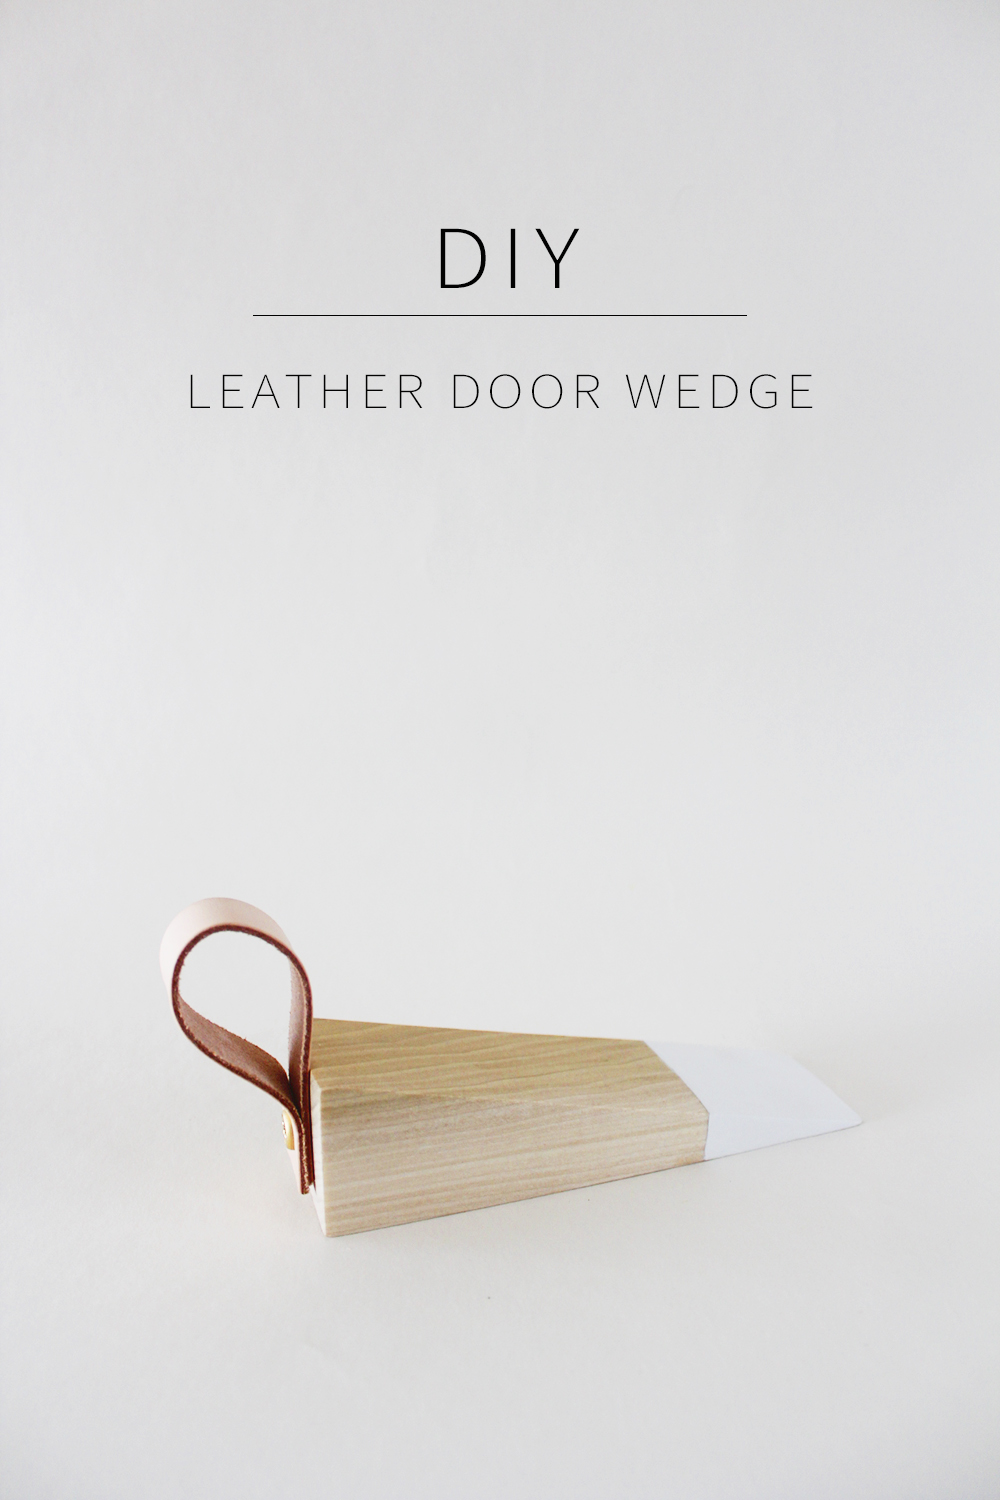 6 DIY Design Strategies For Crafting Decorative Door Stoppers